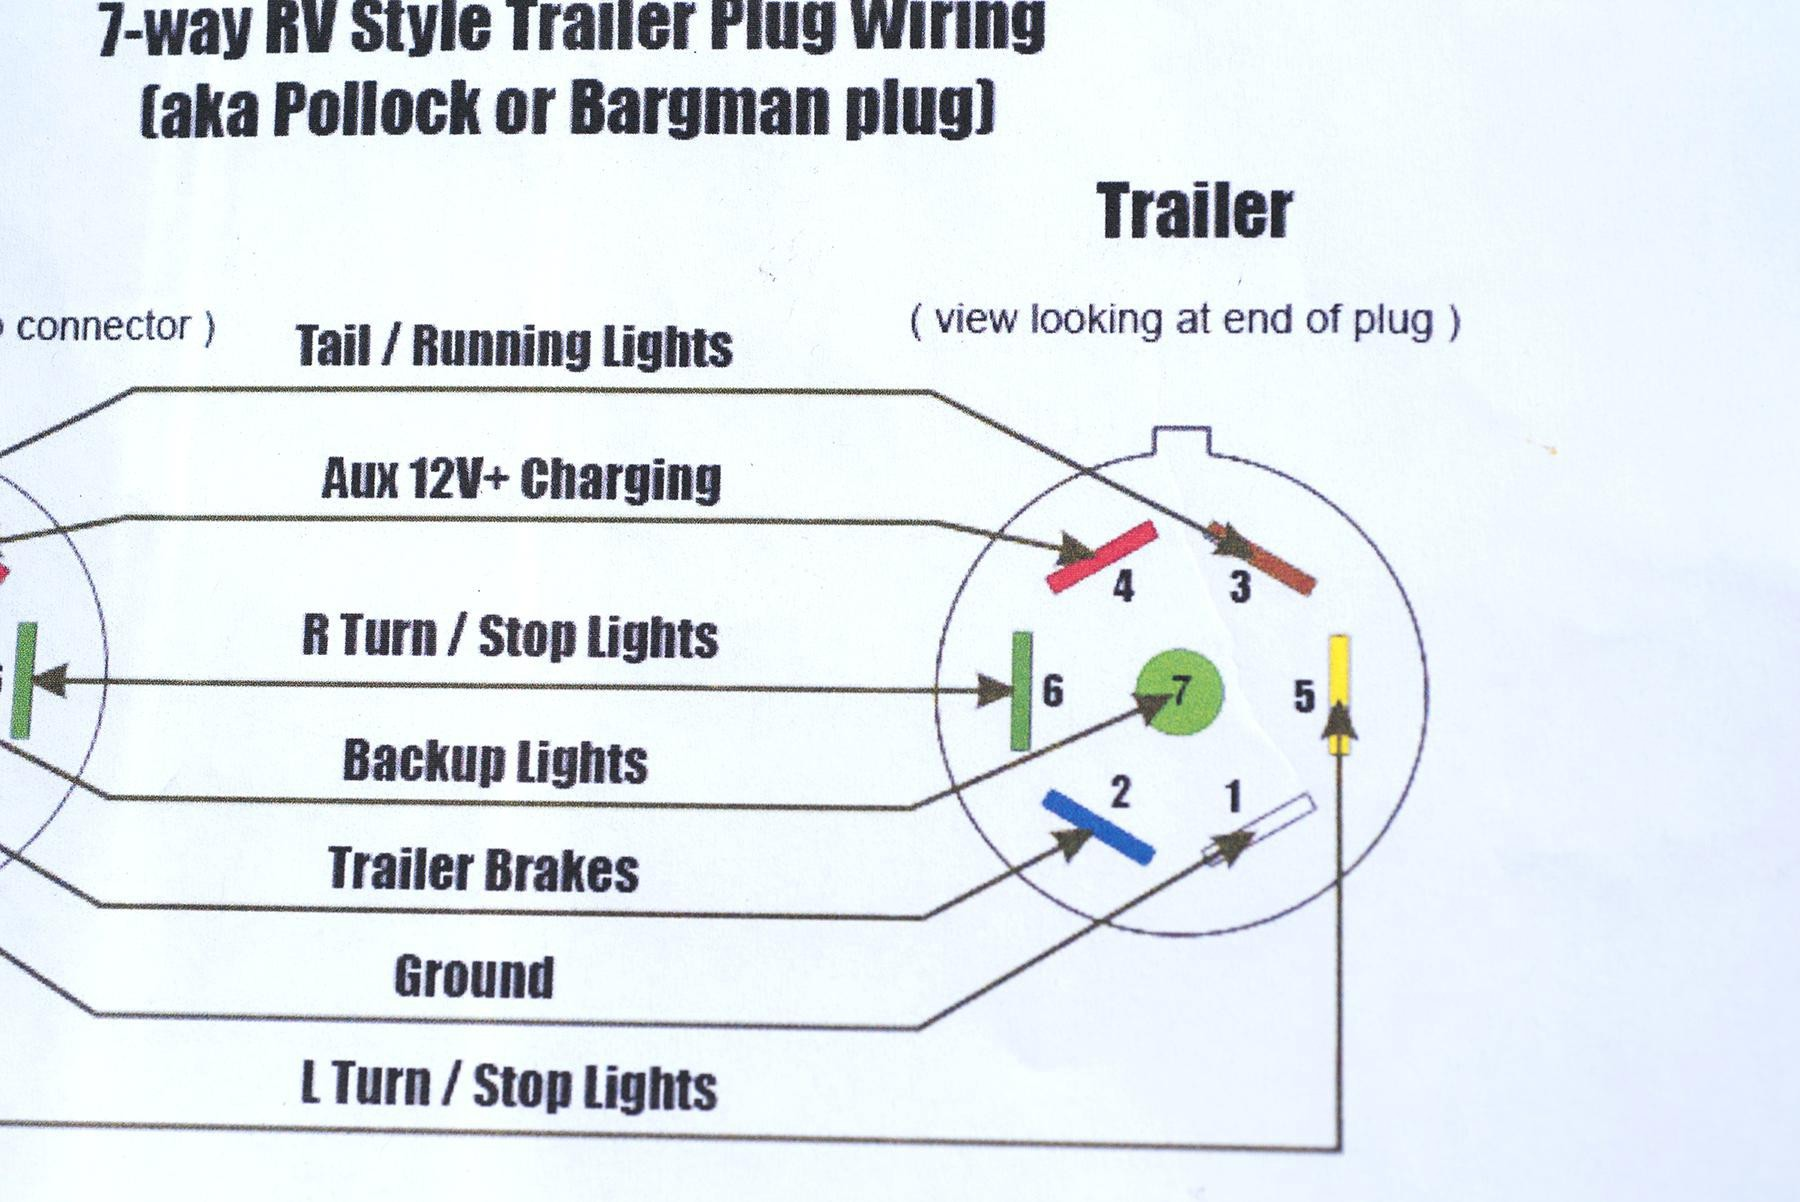 7 Way Truck Wiring Diagram Elegant Trailer Light Wiring Diagram Diagram Of 7 Way Truck Wiring Diagram